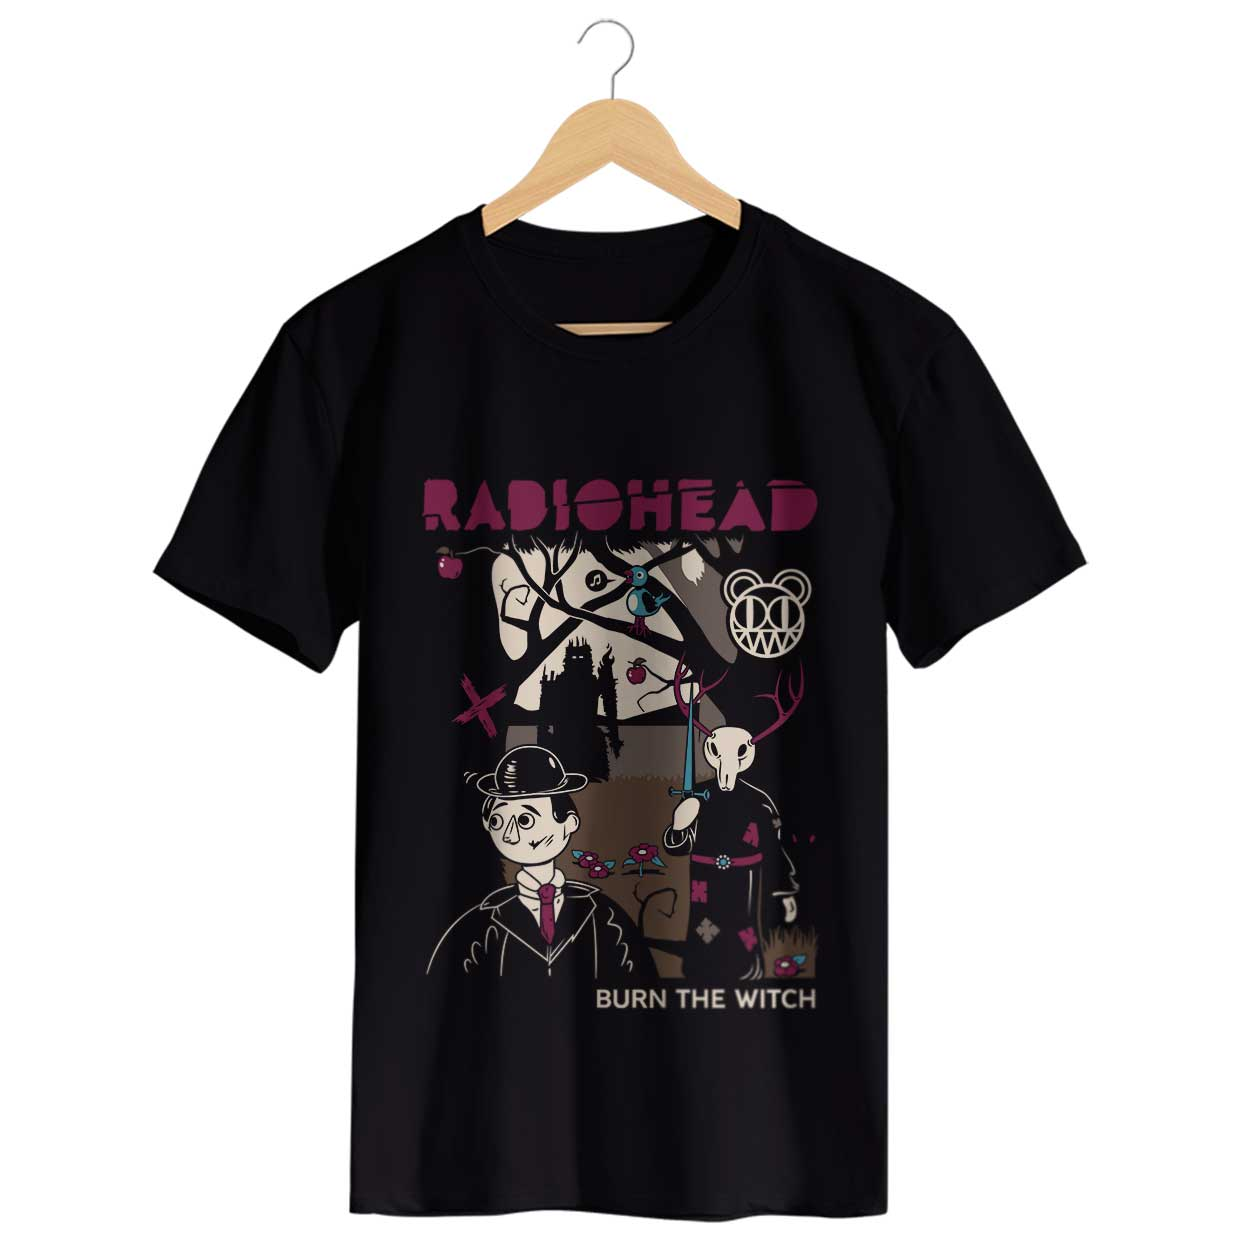 Camiseta Burn The Witch - Radiohead - Masculino